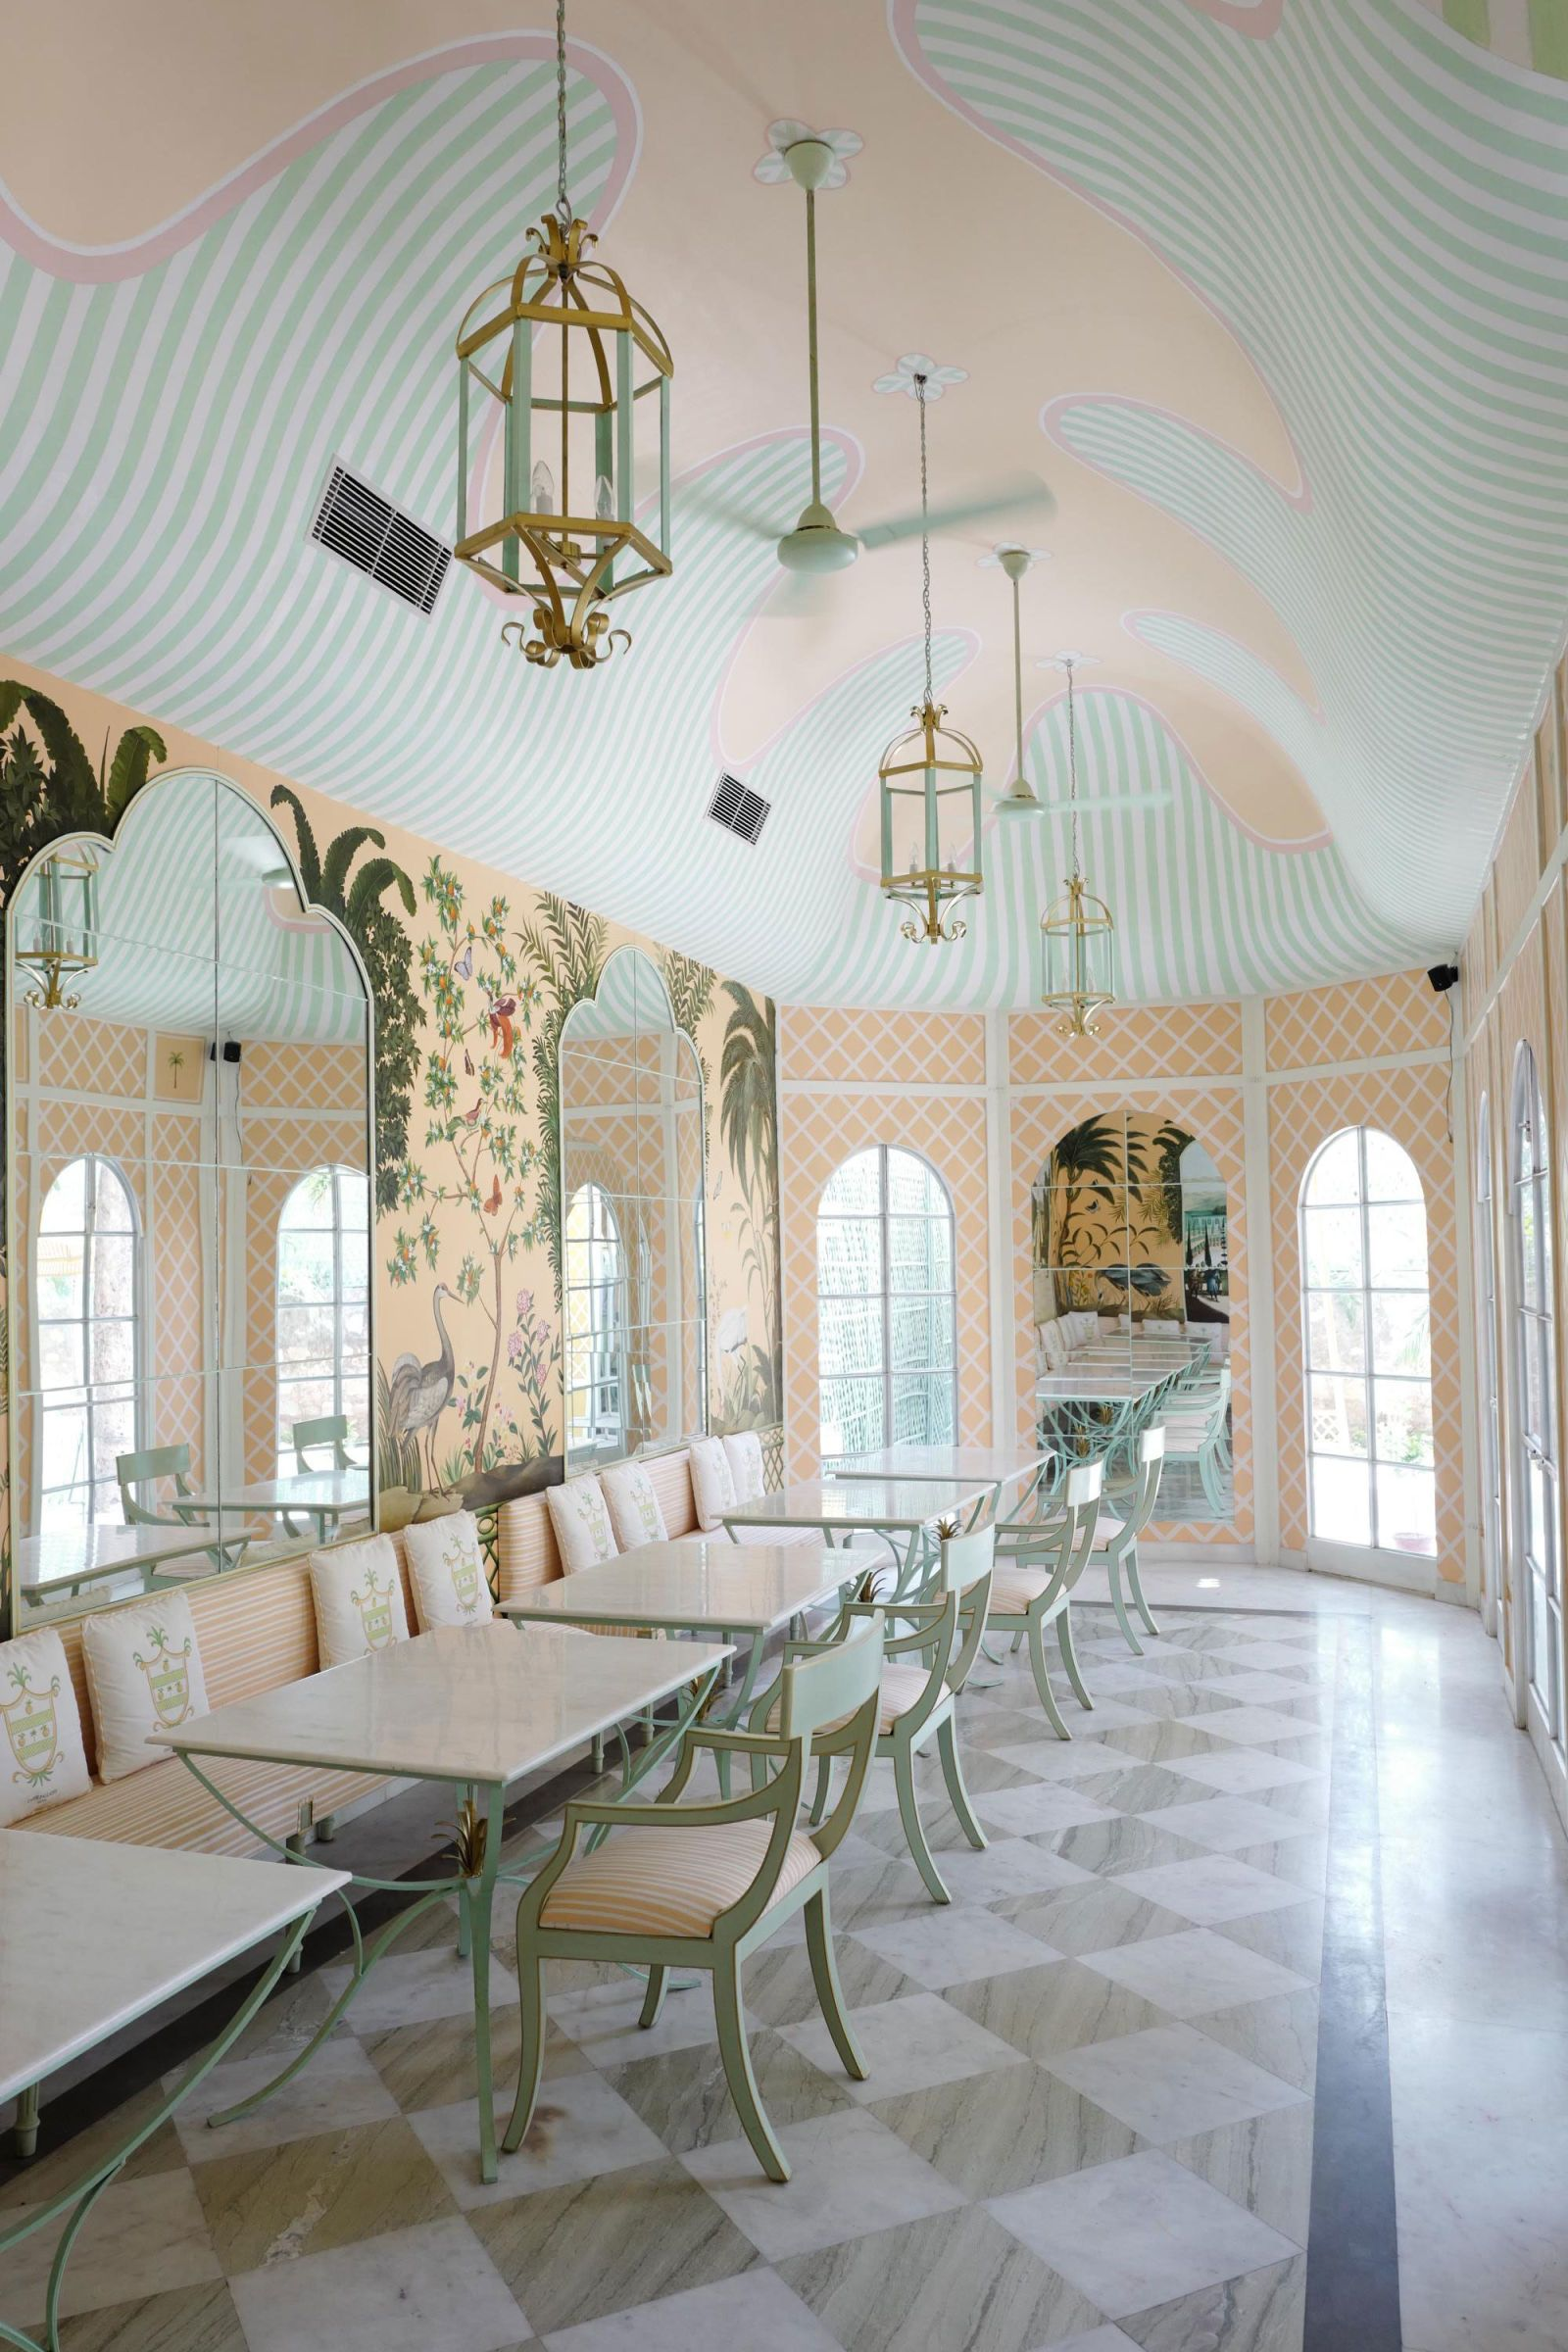 What's Hot On Pinterest Wes Anderson's Inspired Dining Room! 5